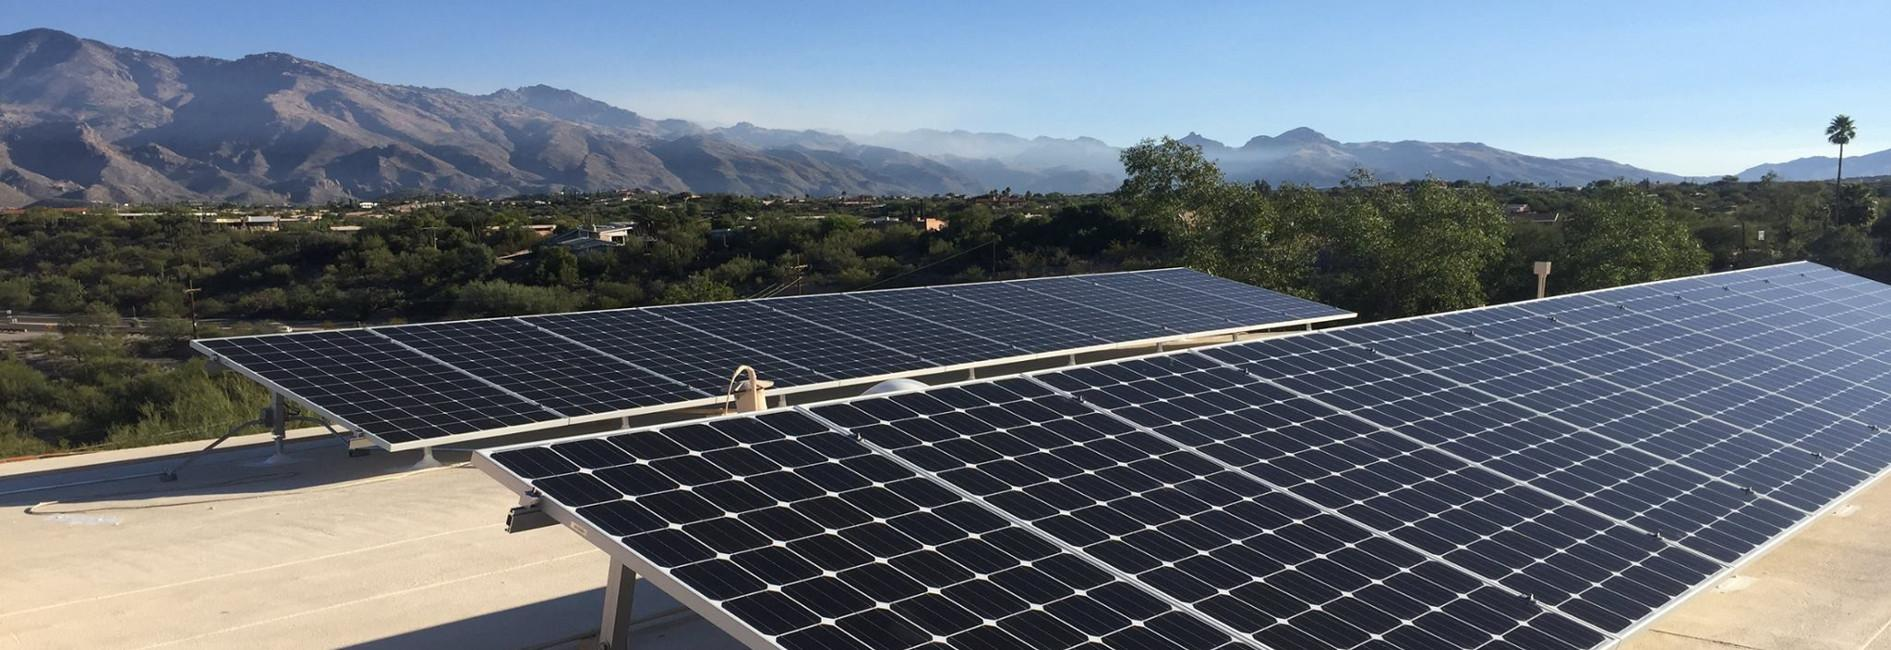 Solar Solution Az Profile Amp Reviews 2019 Energysage